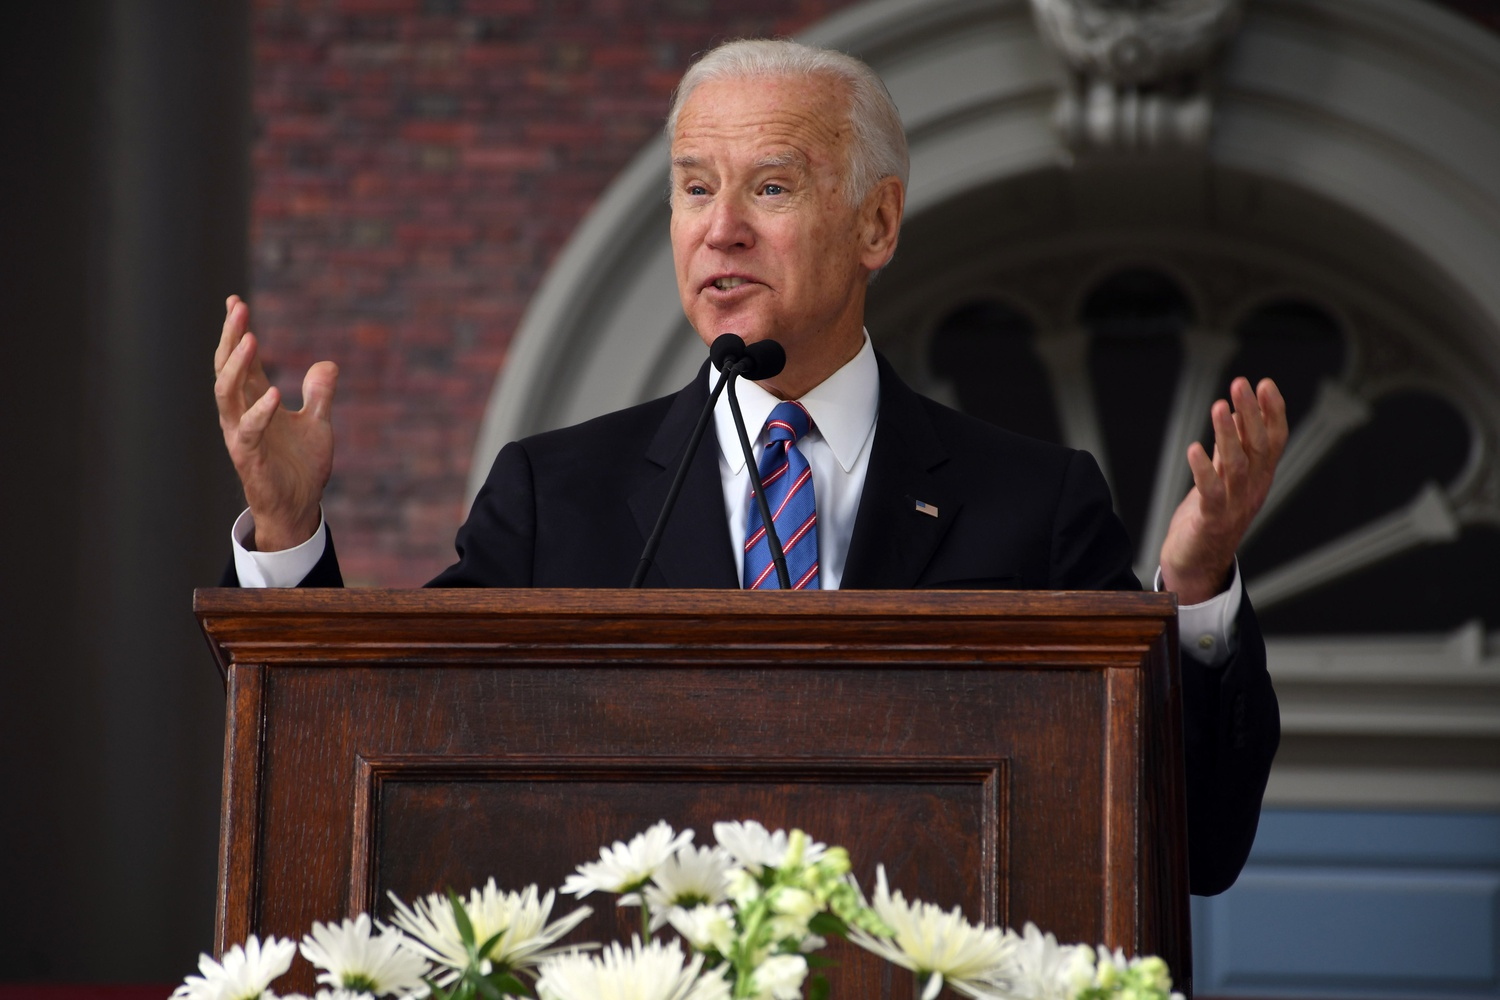 Former Vice President and 2020 presidential candidate Joseph R. Biden Jr. delivers his speech at the 2017 Harvard Class Day exercises.